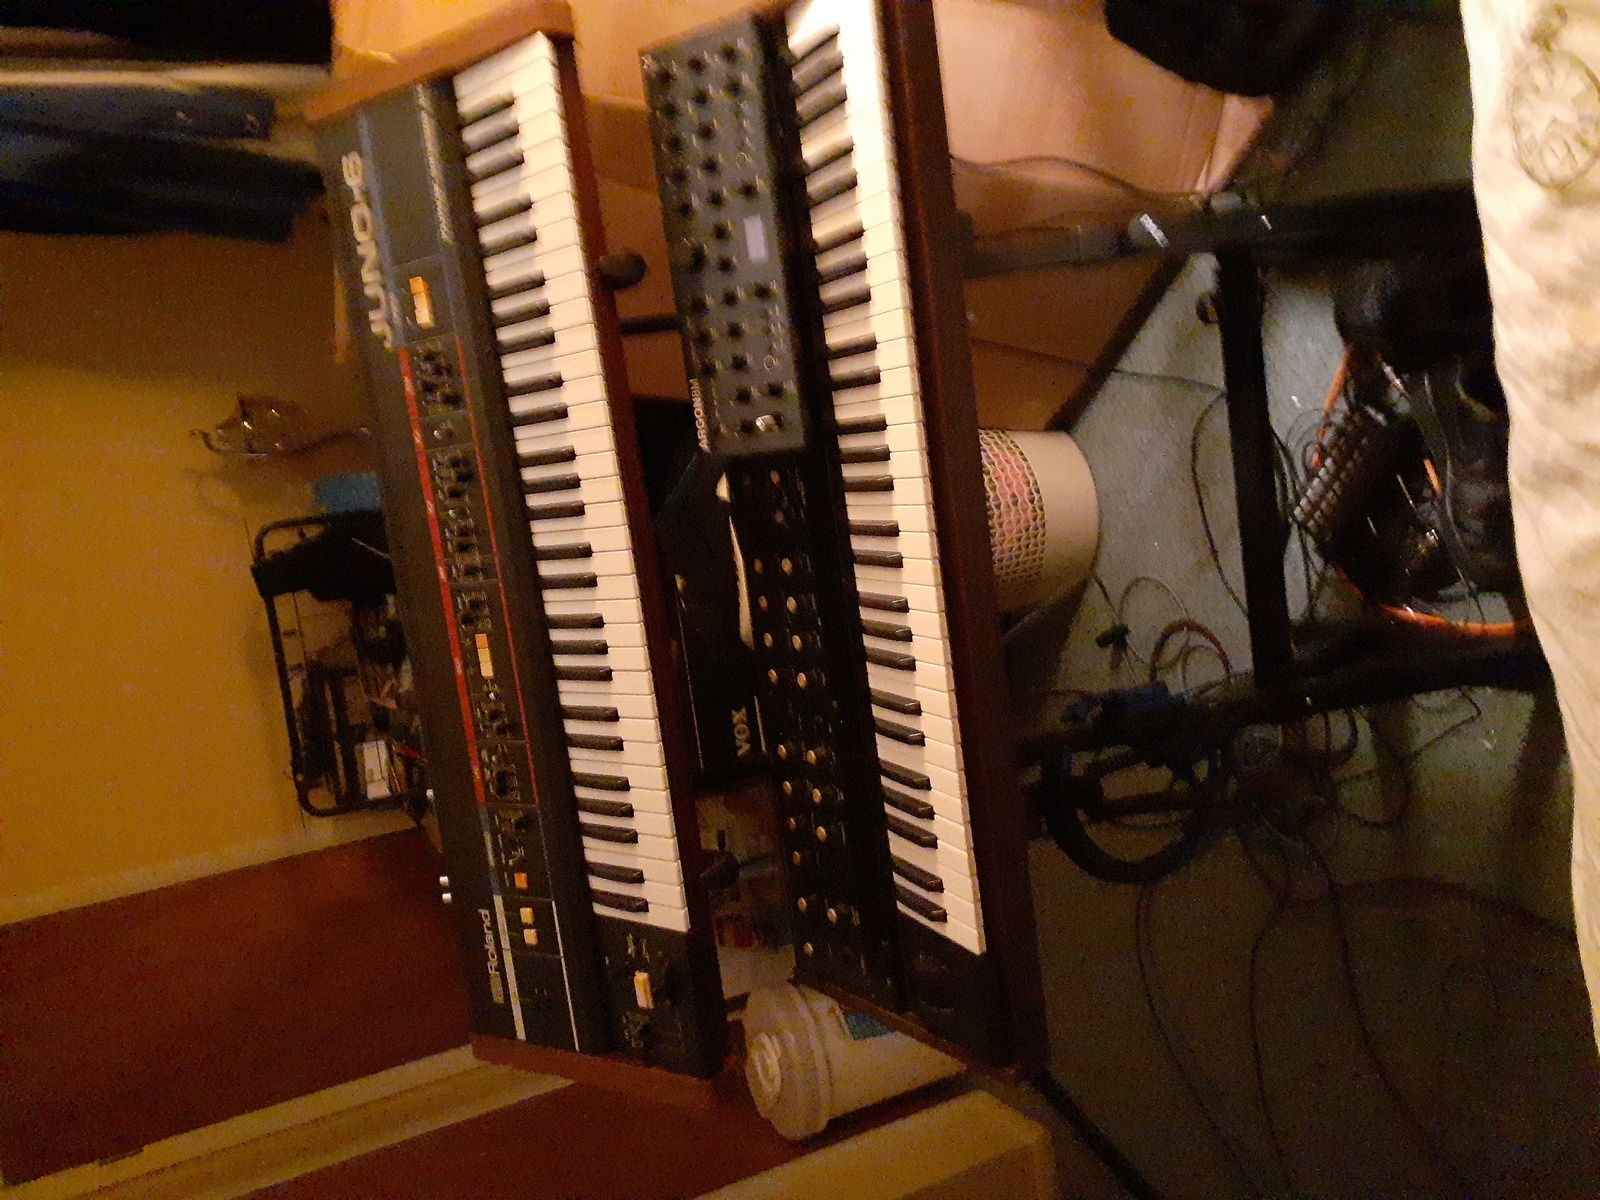 Photo of Korg PolySix and more gear